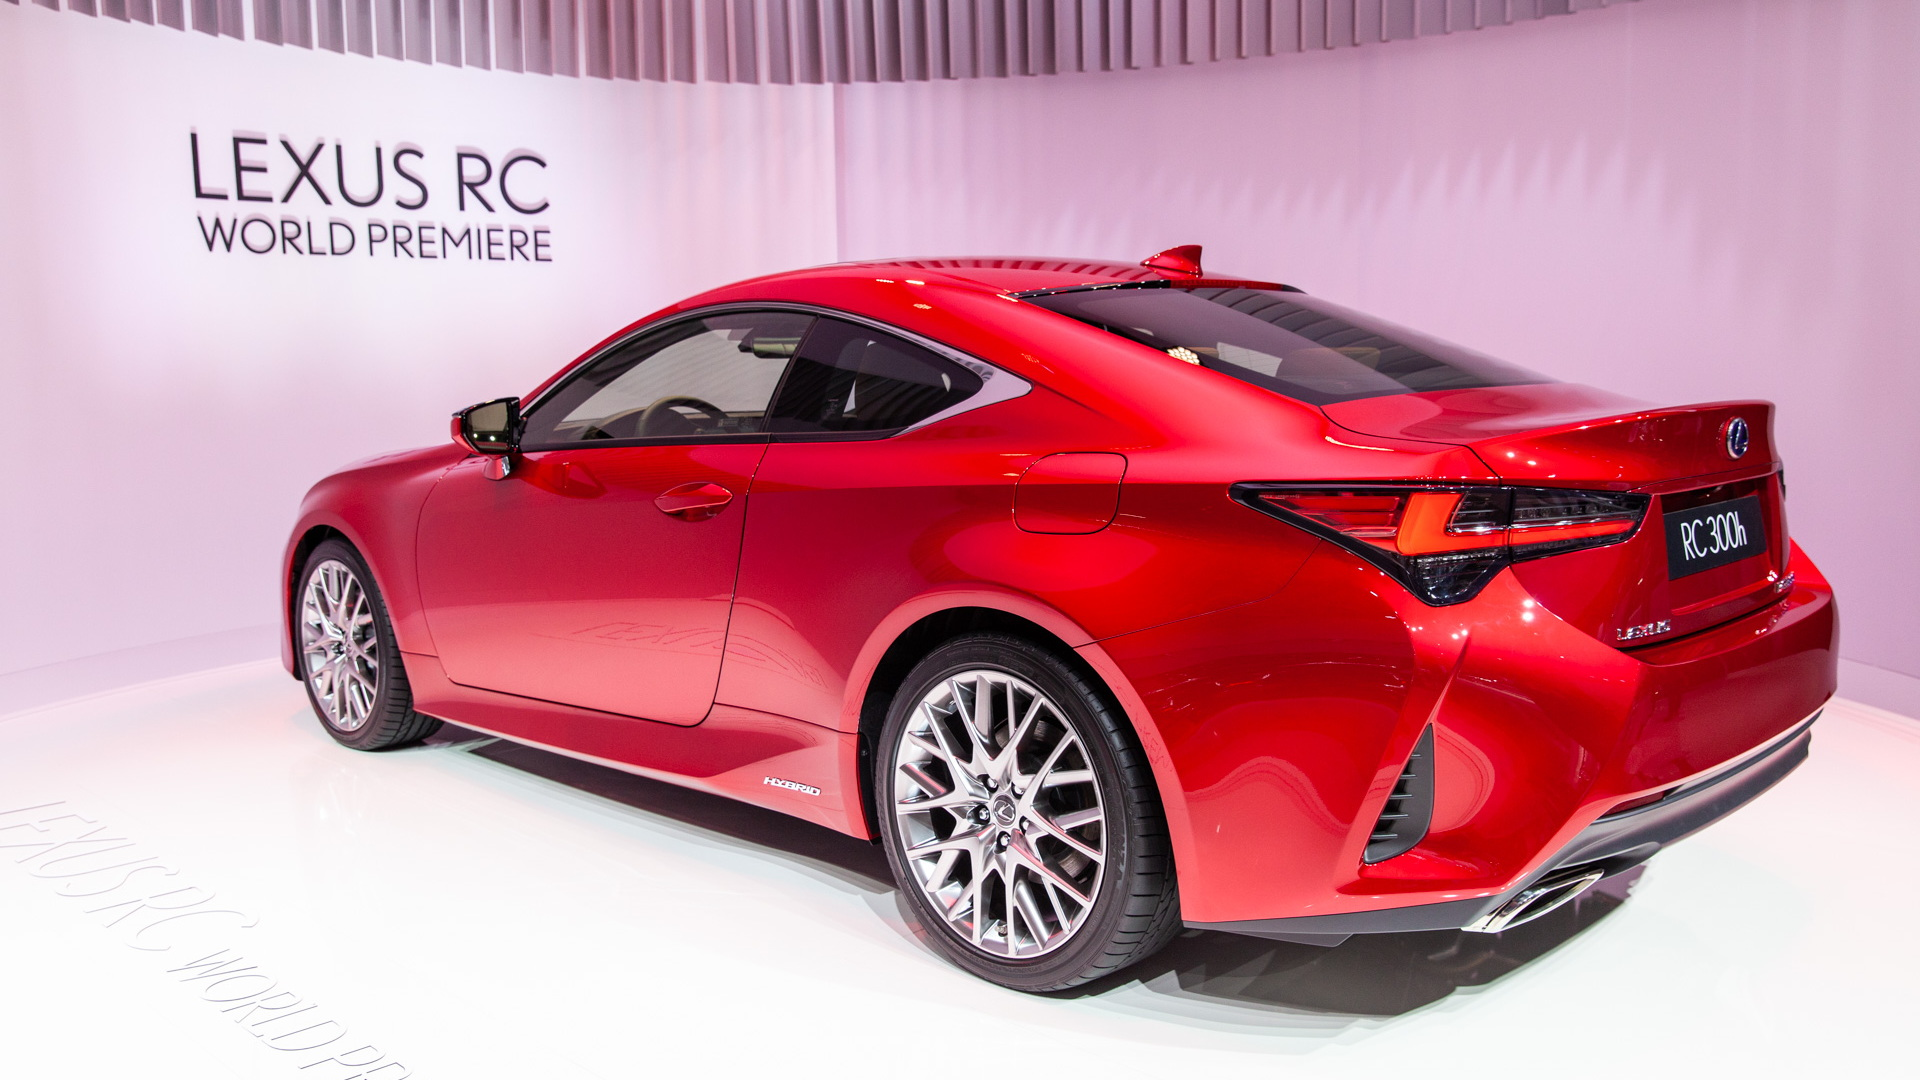 2019 Lexus RC, 2018 Paris auto show